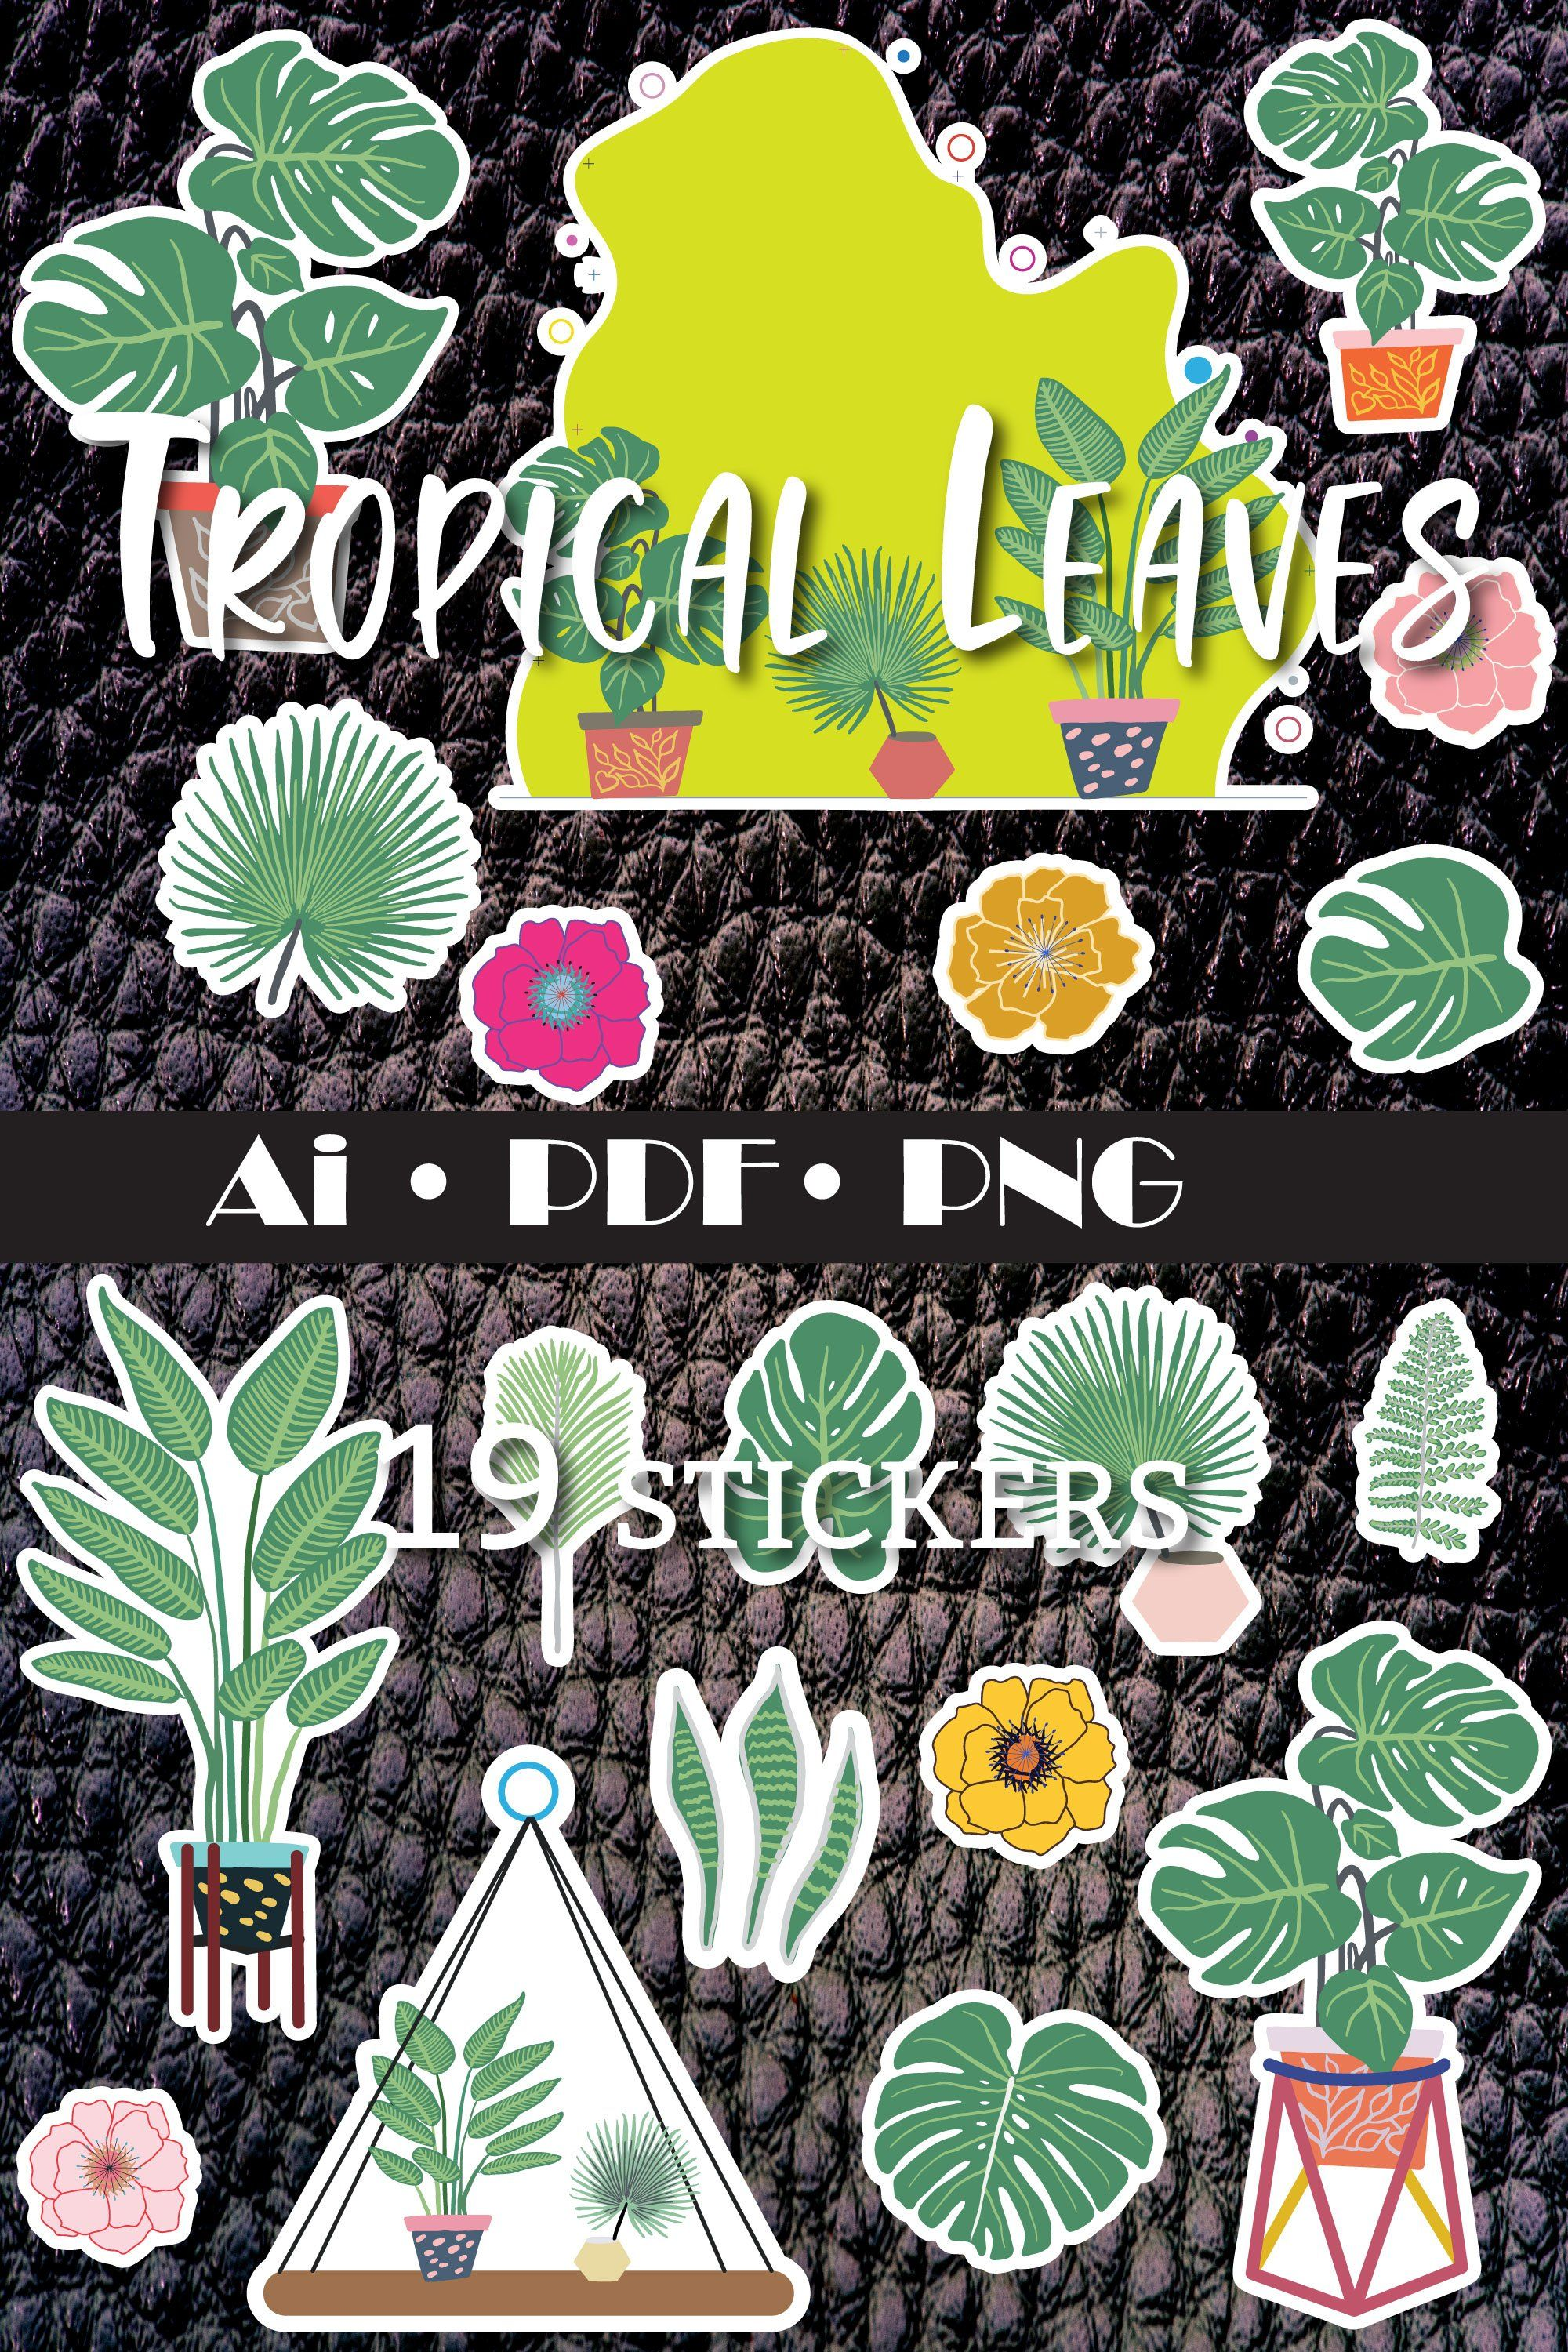 Plant Stickers Tropical 19 Stickers 880727 Illustrations Design Bundles In 2020 Alphabet Illustration Graphic Illustration Sticker Art Tropical leaves transparent images (51). pinterest